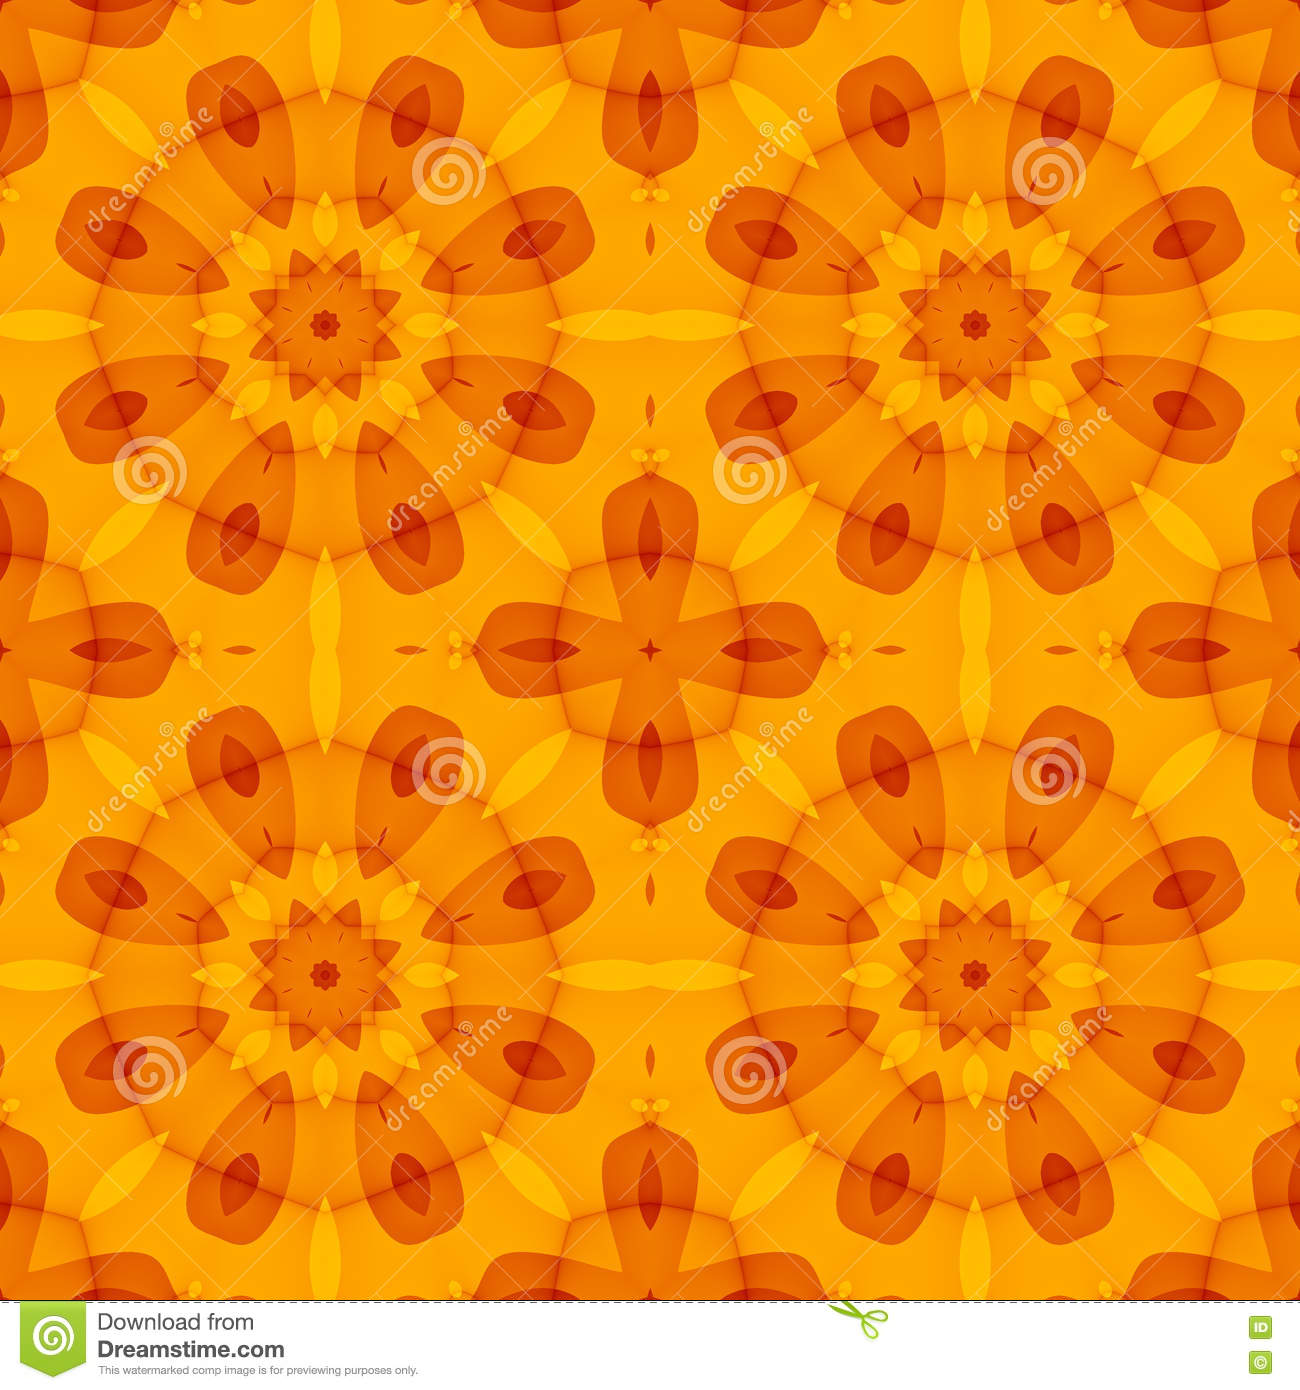 Bed sheet pattern texture - Seamless Texture With An Orange Floral Pattern Royalty Free Stock Images